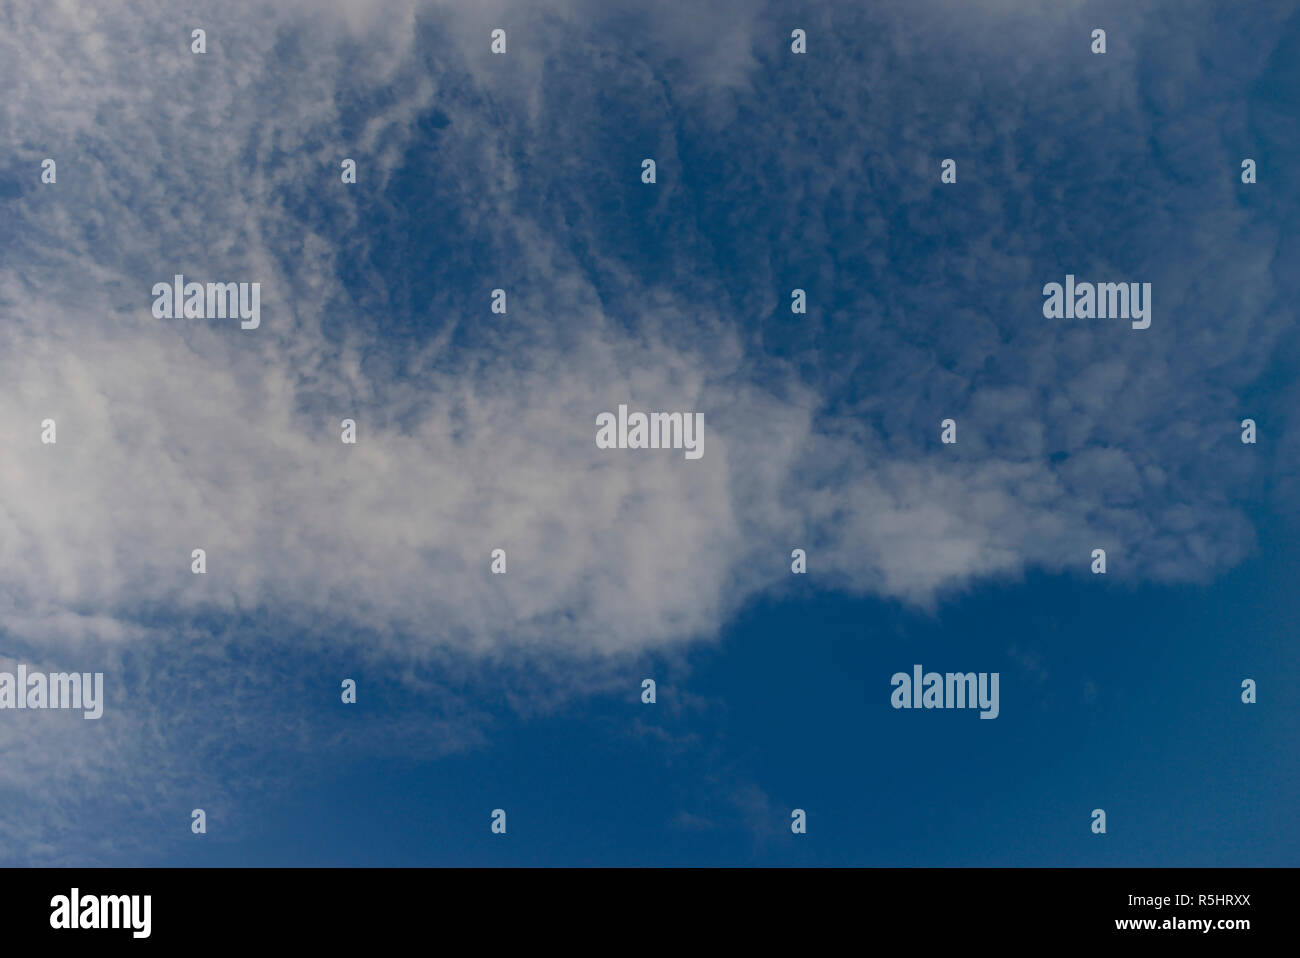 A layer of cirrus cloulds on blue sky - Stock Image